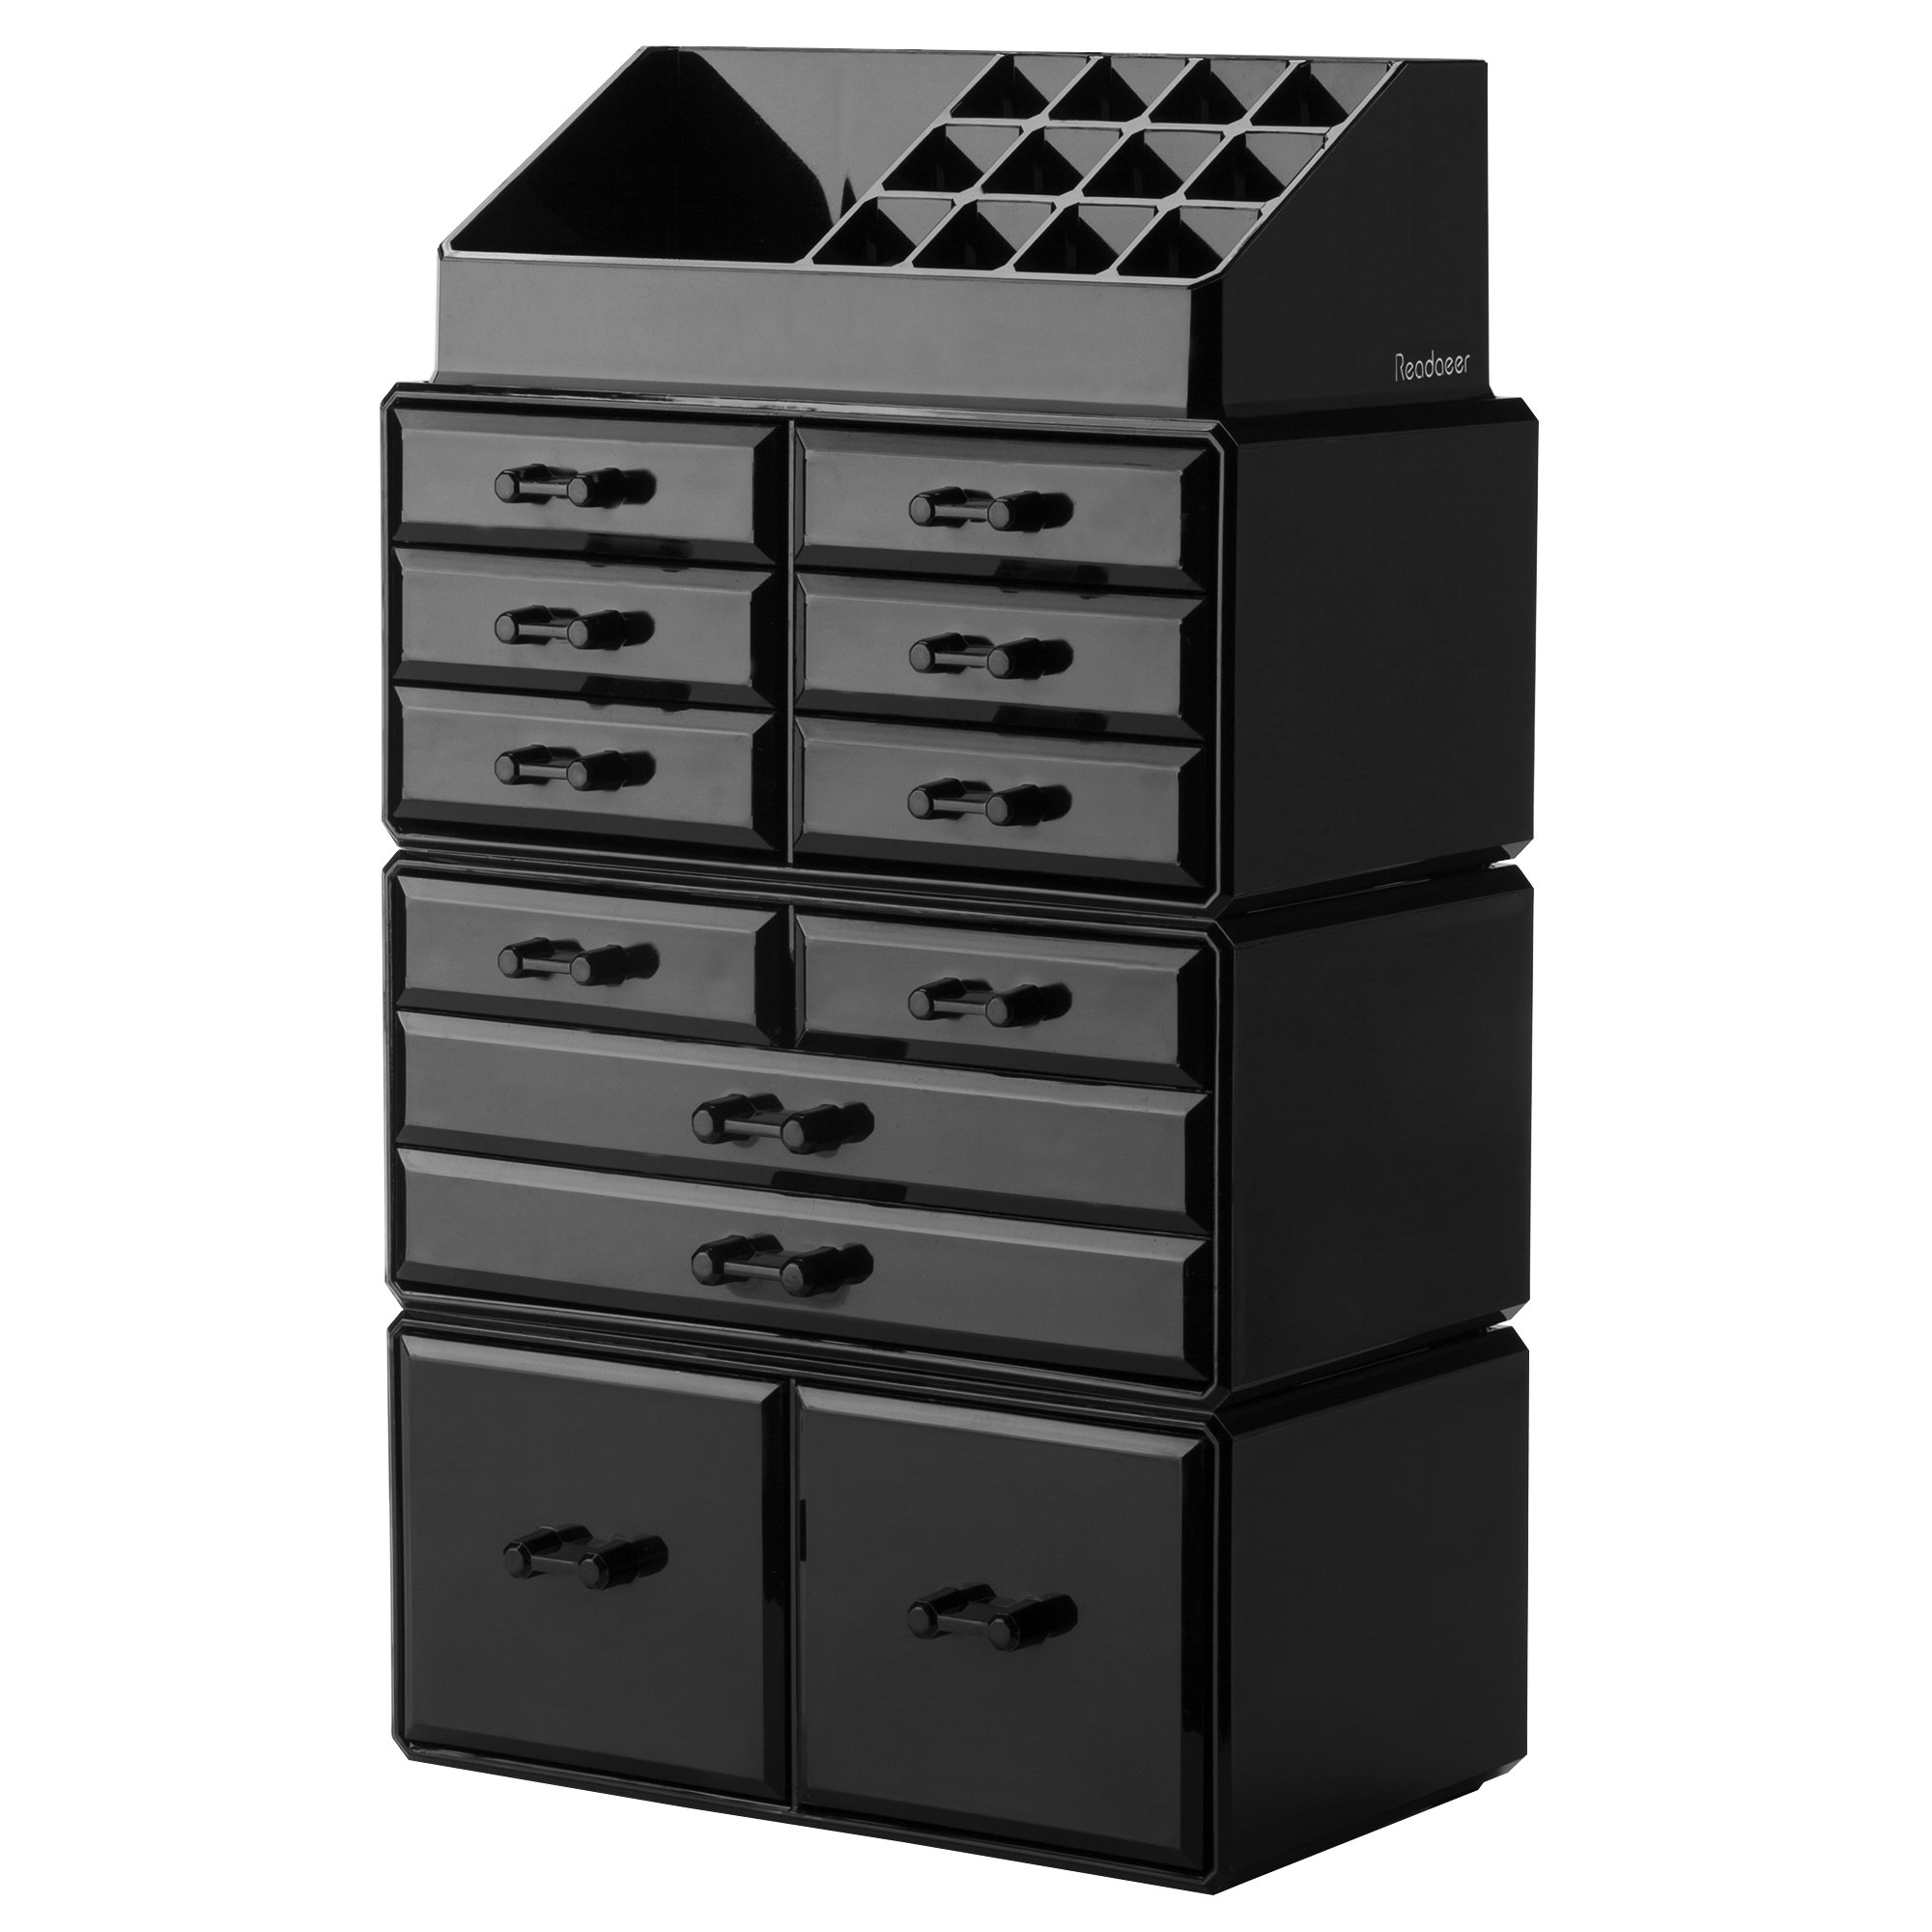 Details about Readaeer Makeup Cosmetic Organizer Storage Drawers Display  Boxes Case with 12